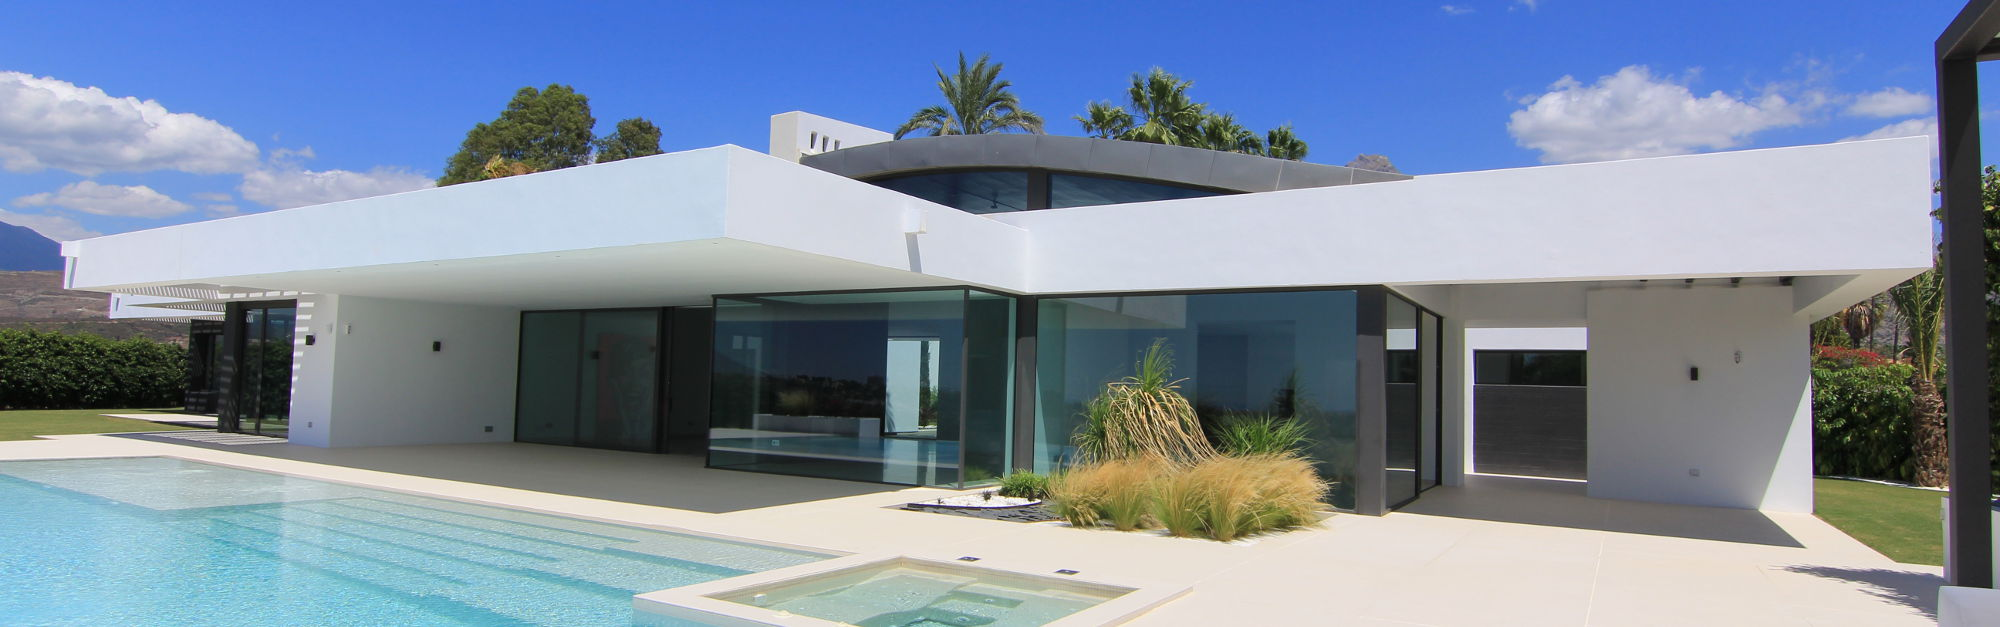 3 marbella luxury real estate agents high end villas - Luxury homes marbella ...